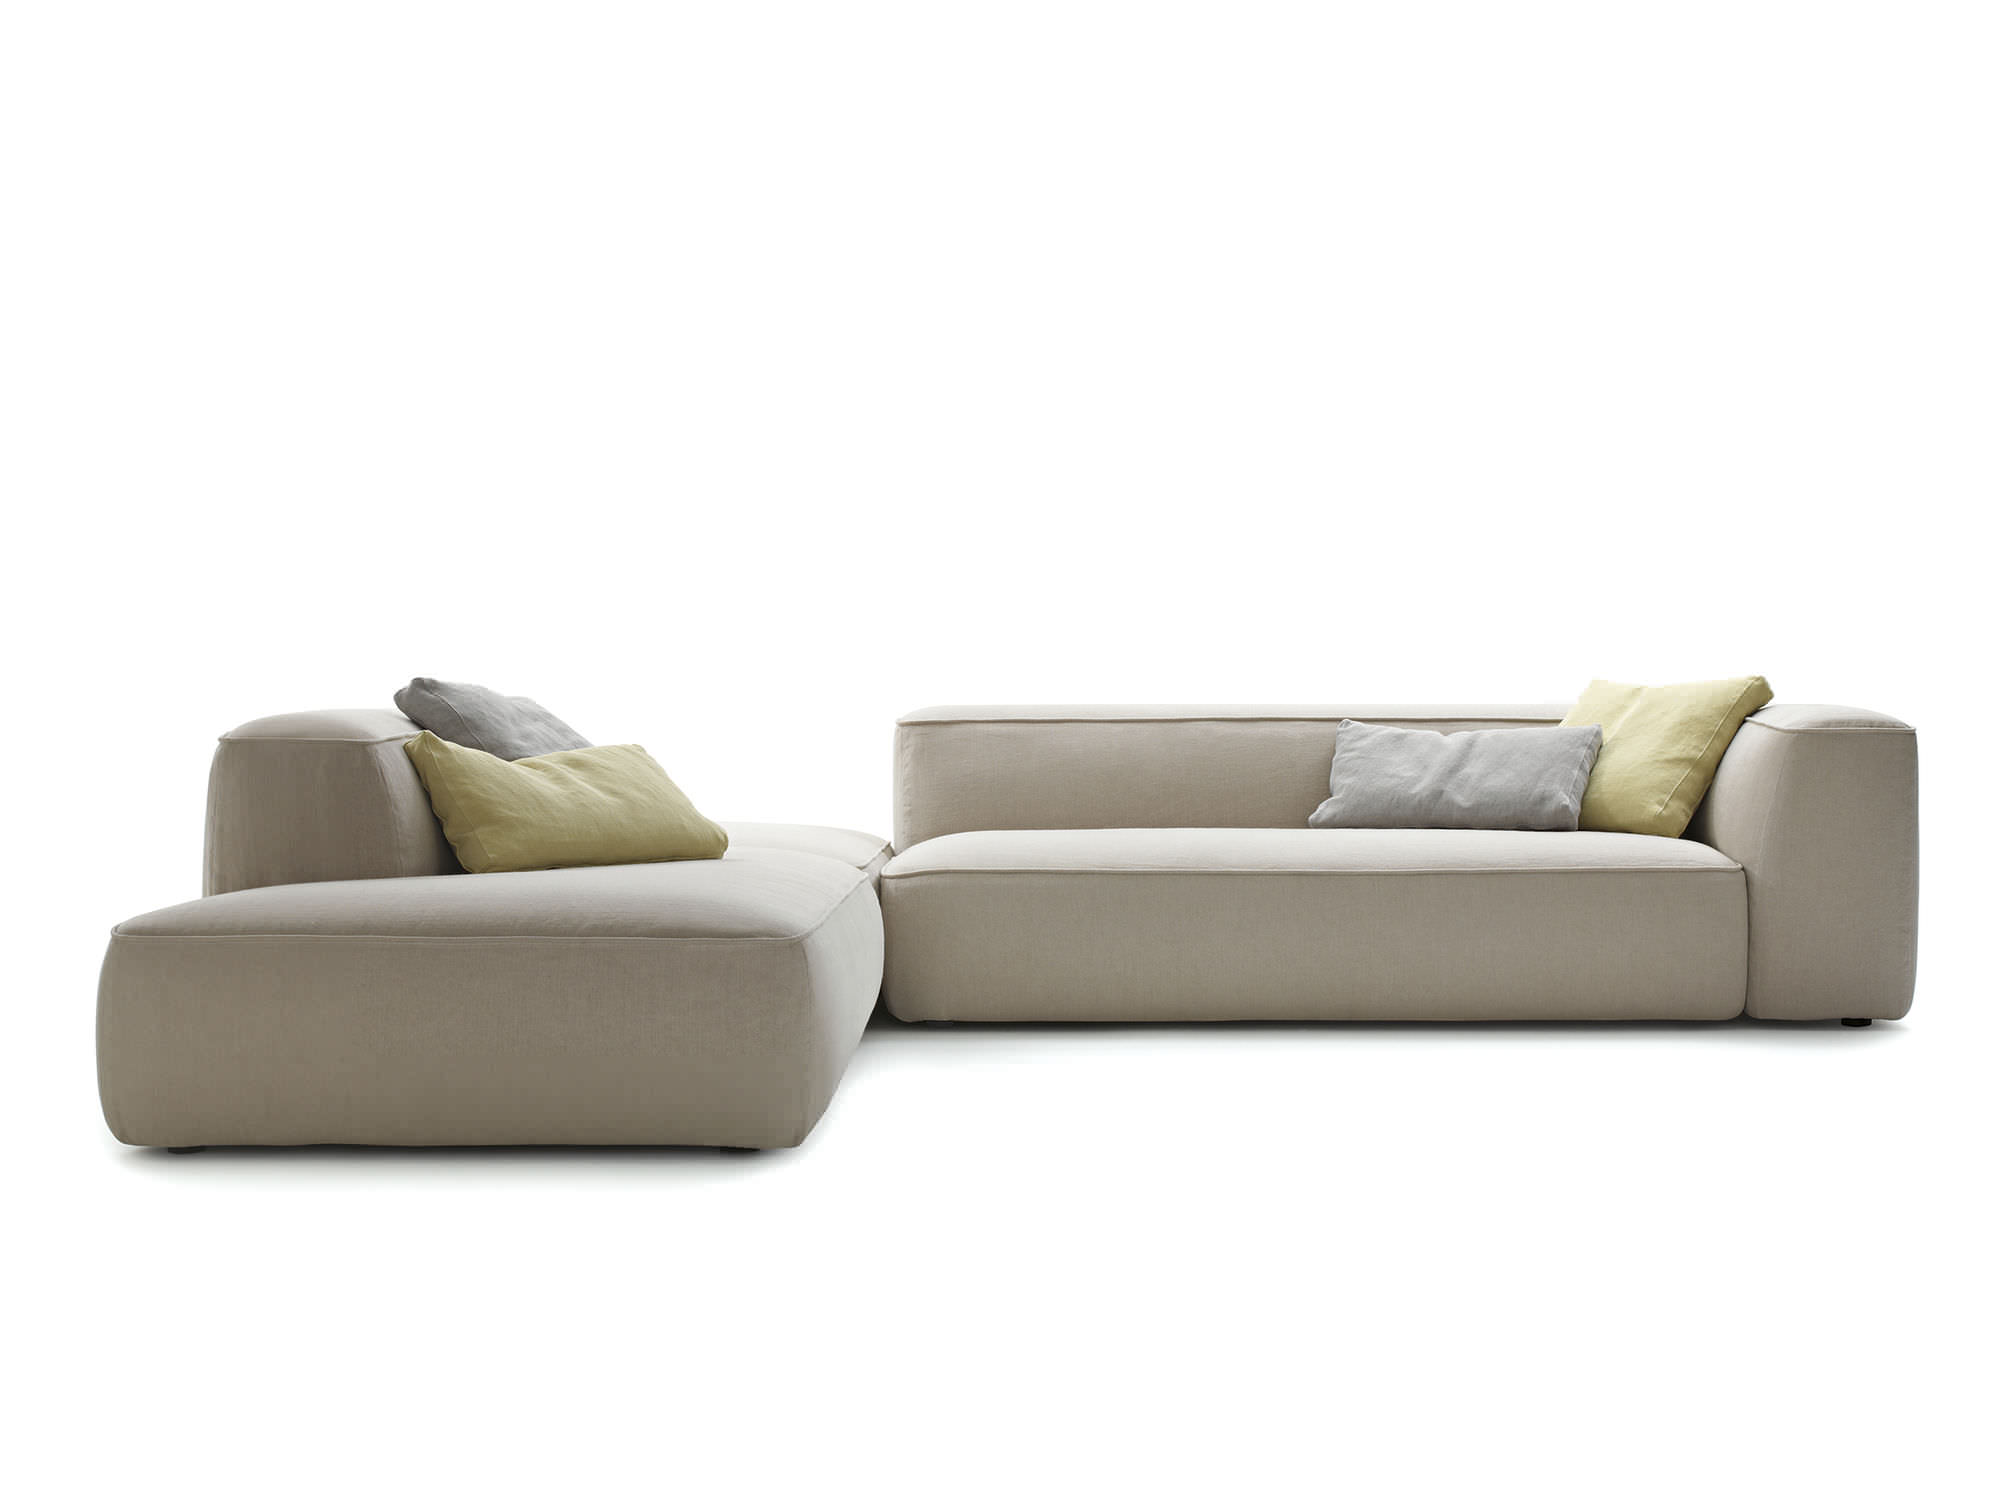 Modular sofa contemporary fabric gray CLOUD by Francesco